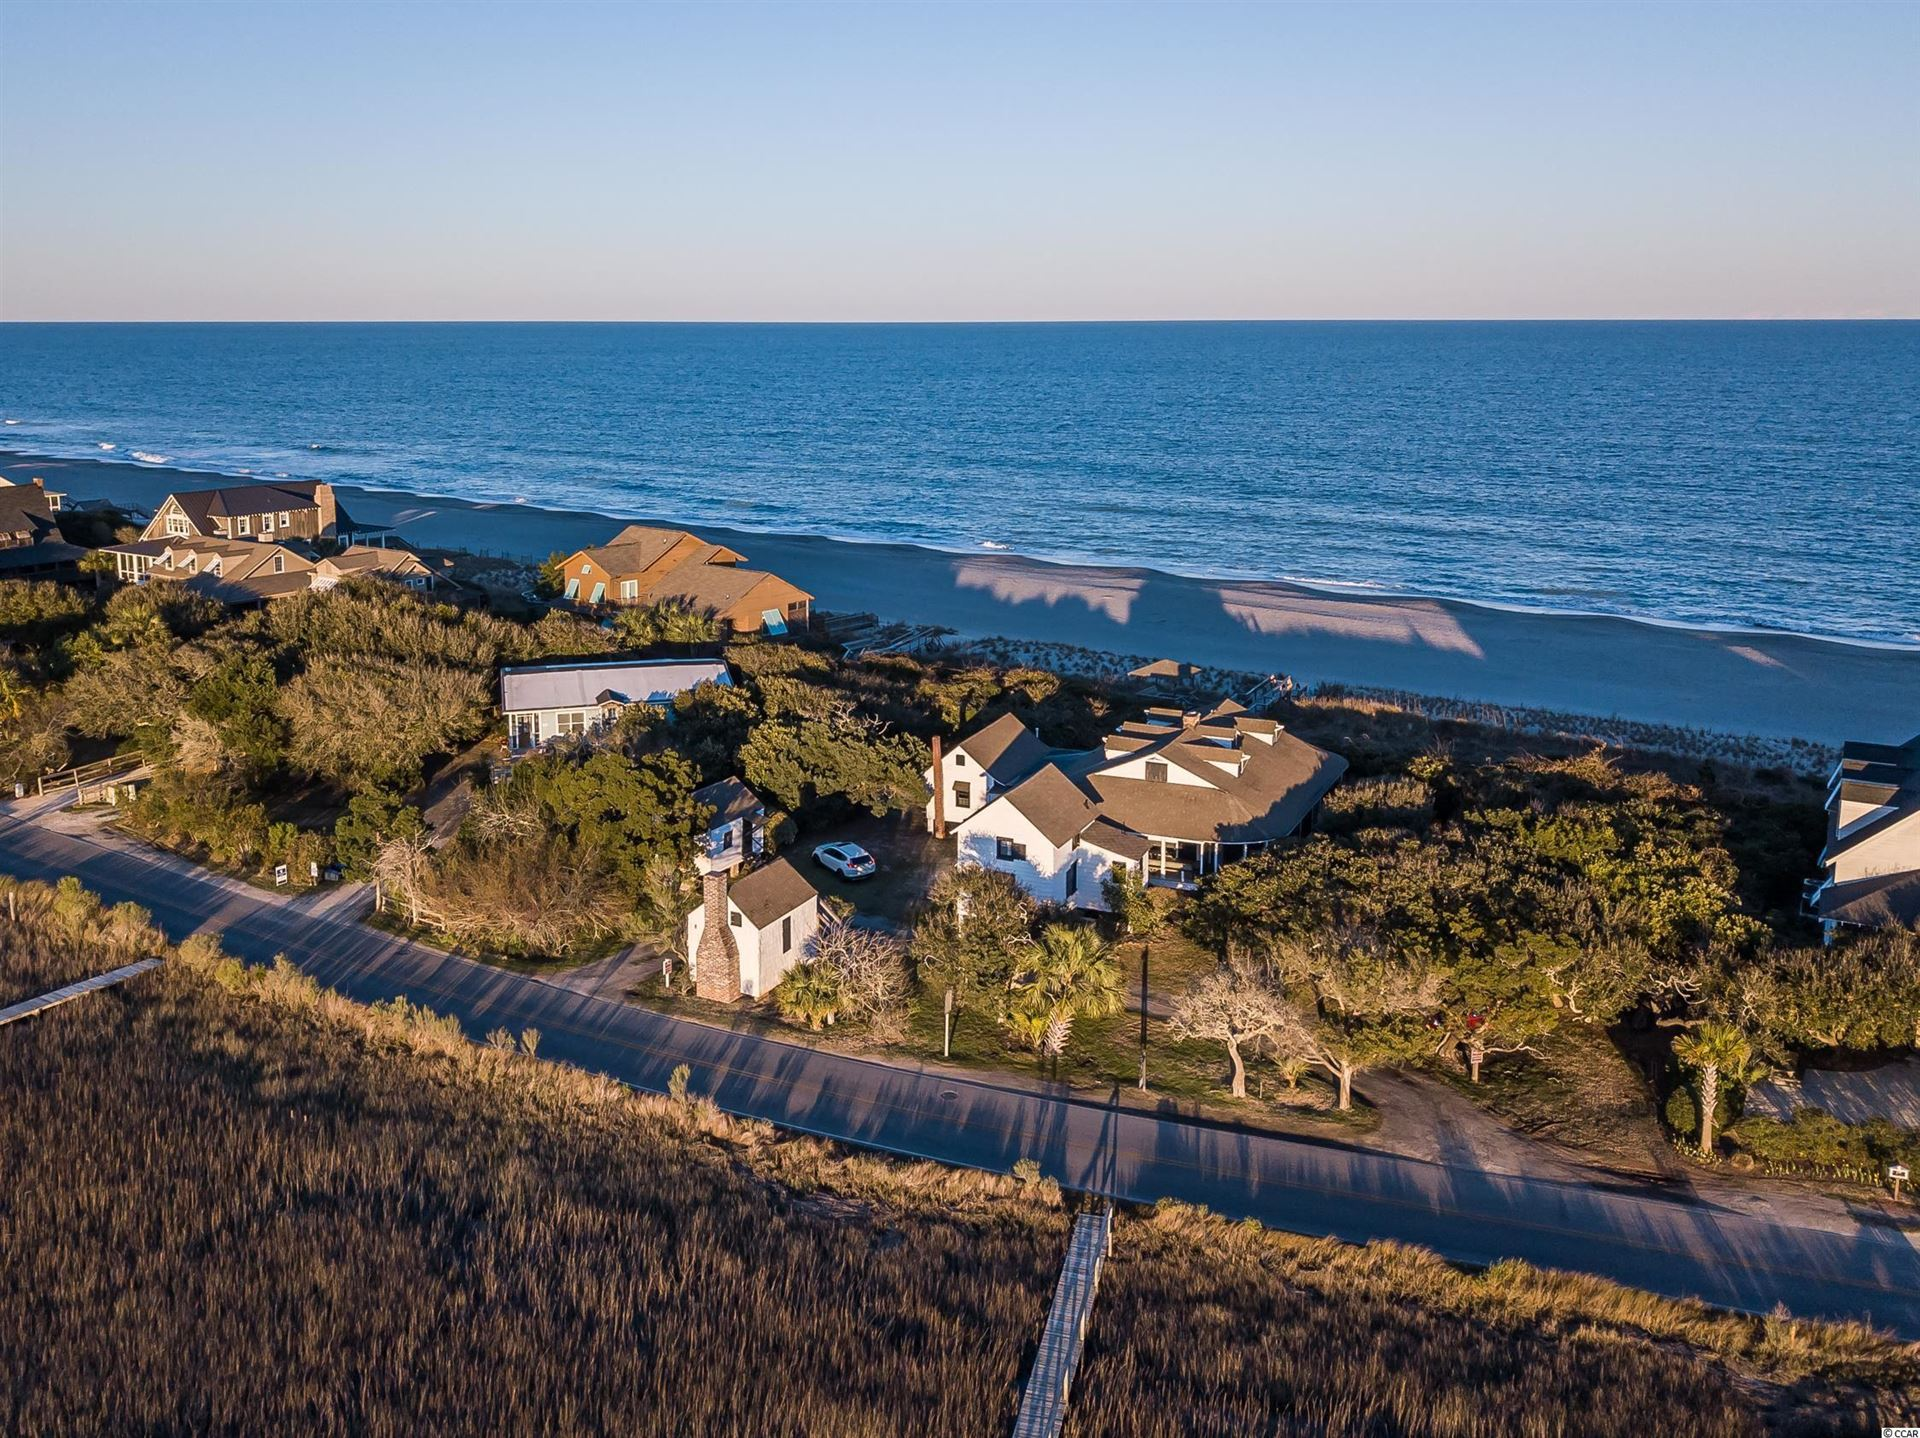 546 Myrtle Ave., Pawleys Island, SC, 29585 Real Estate For Sale